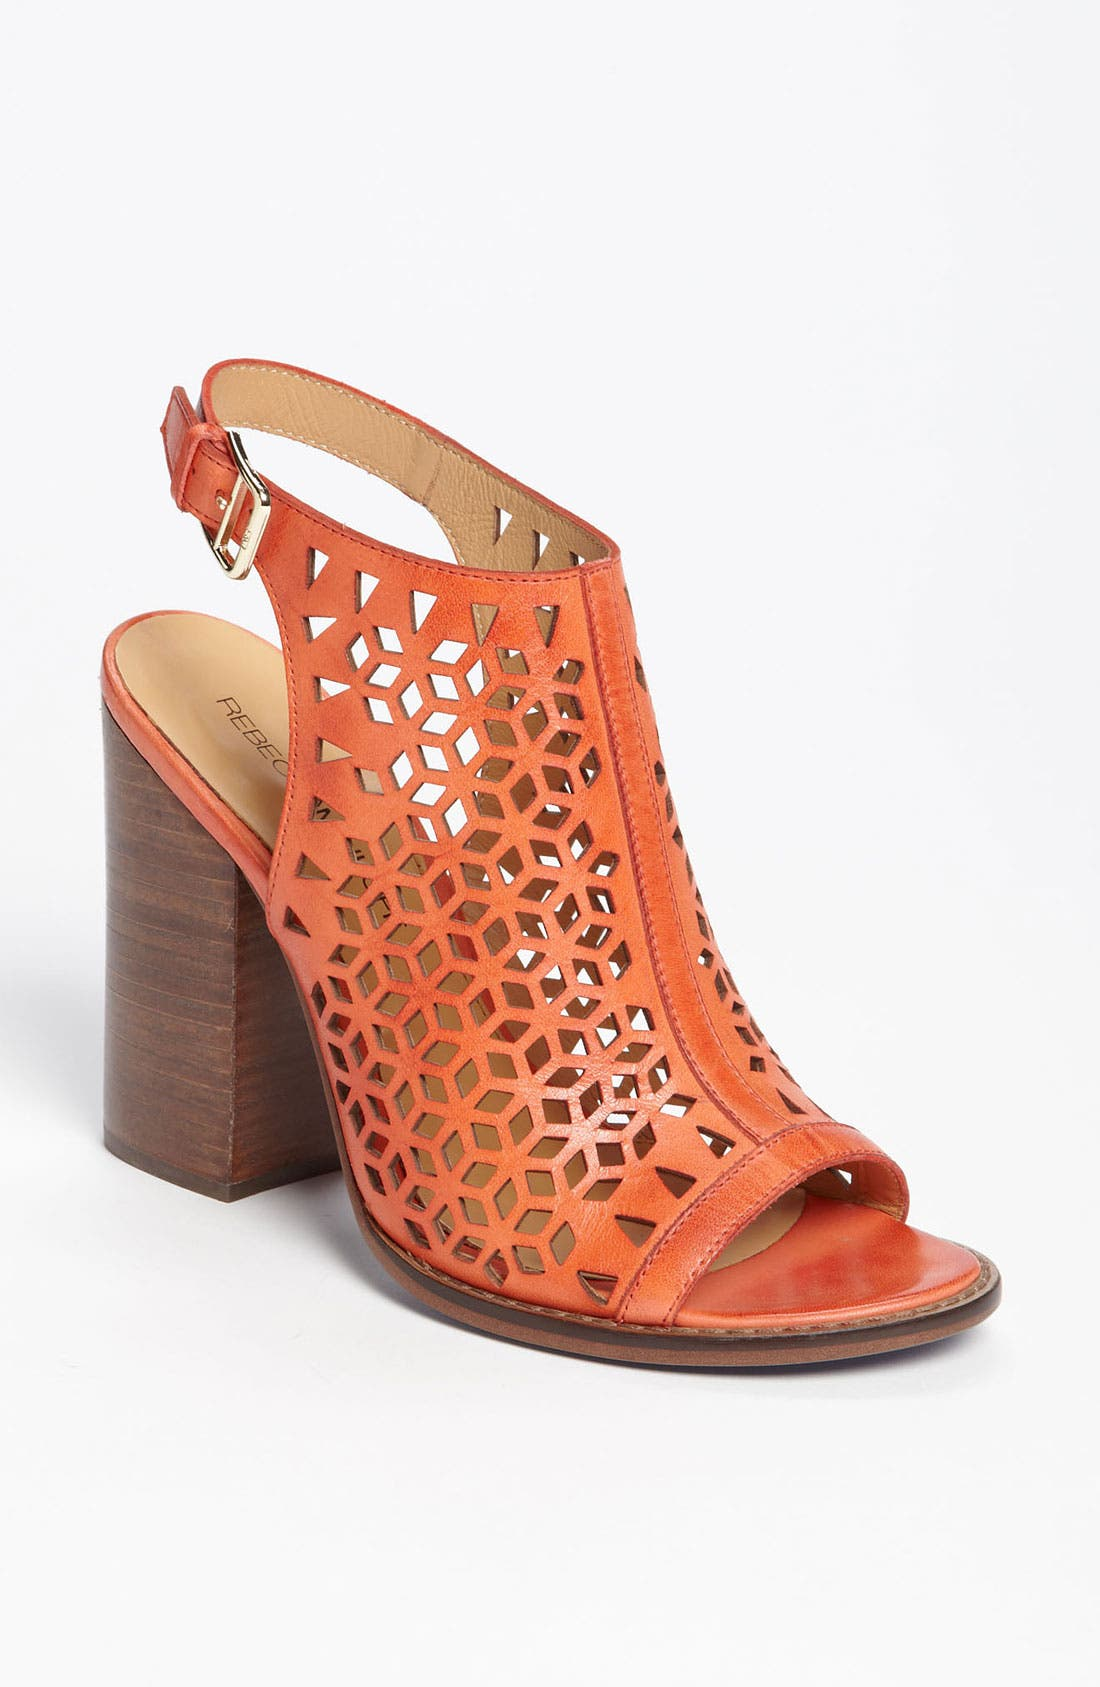 Alternate Image 1 Selected - Rebecca Minkoff 'Demetra' Sandal